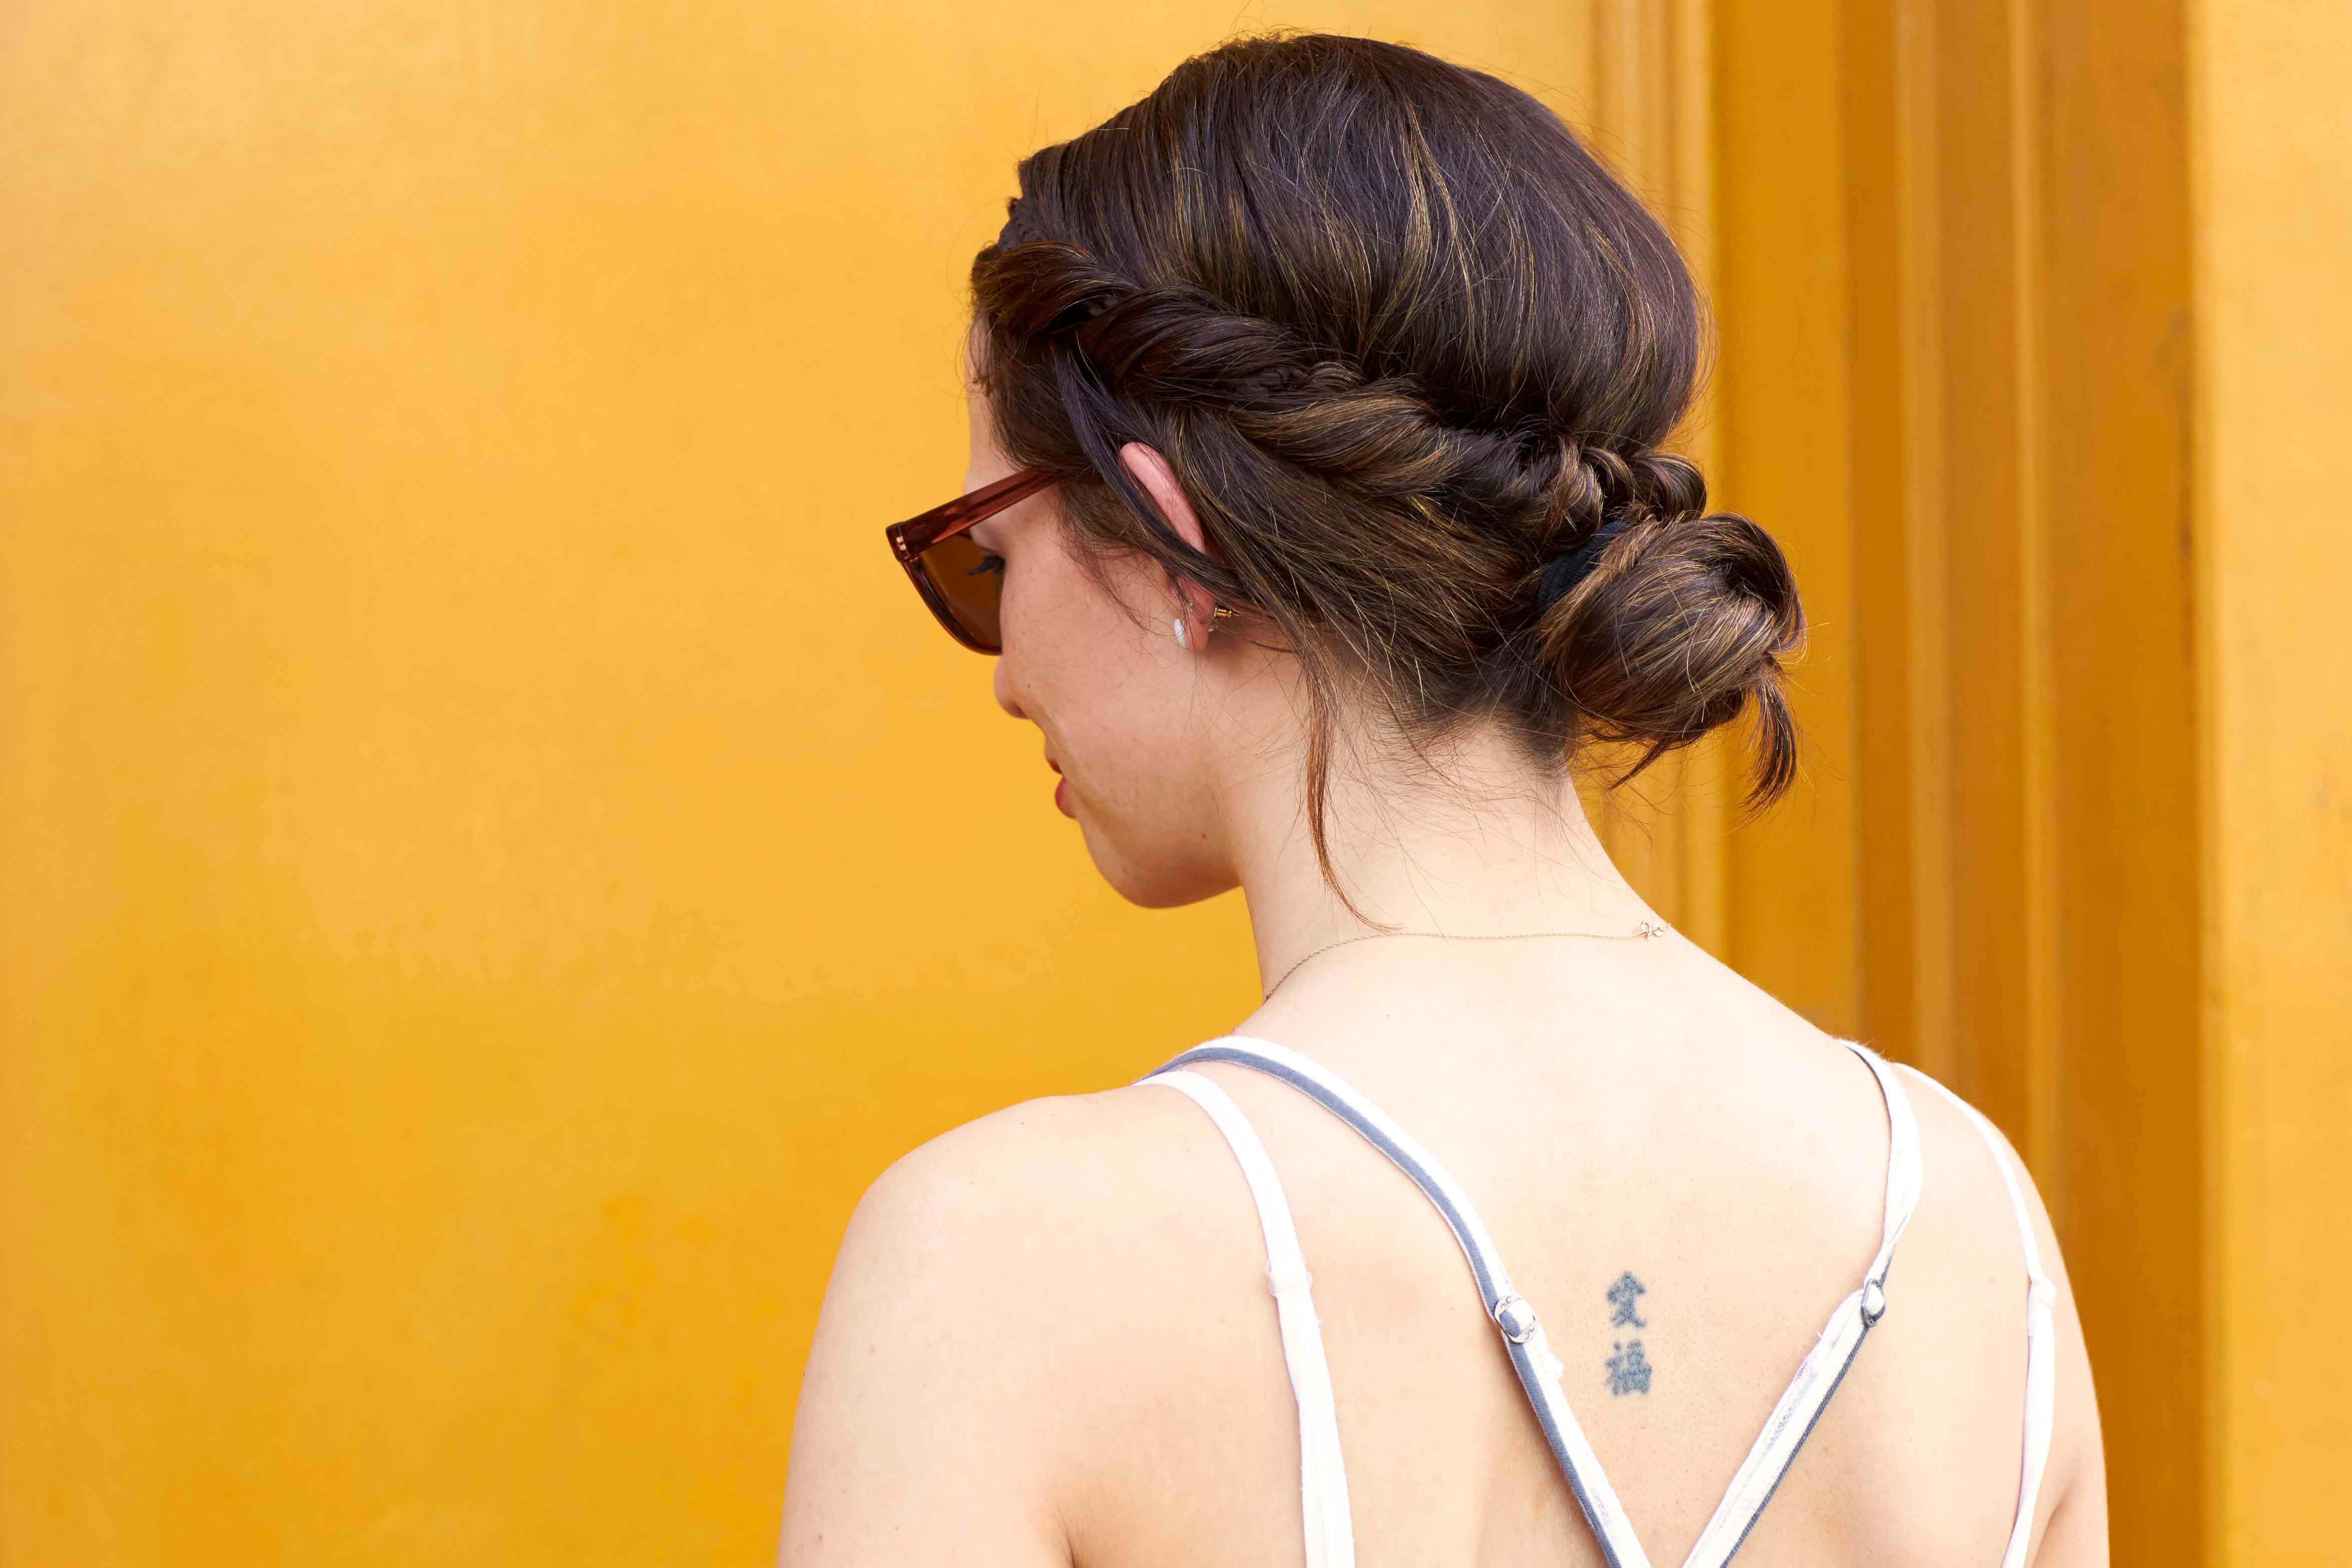 Best hairspray: Woman with brown hair in twisted low bun wearing a summer vest and sunglasses.